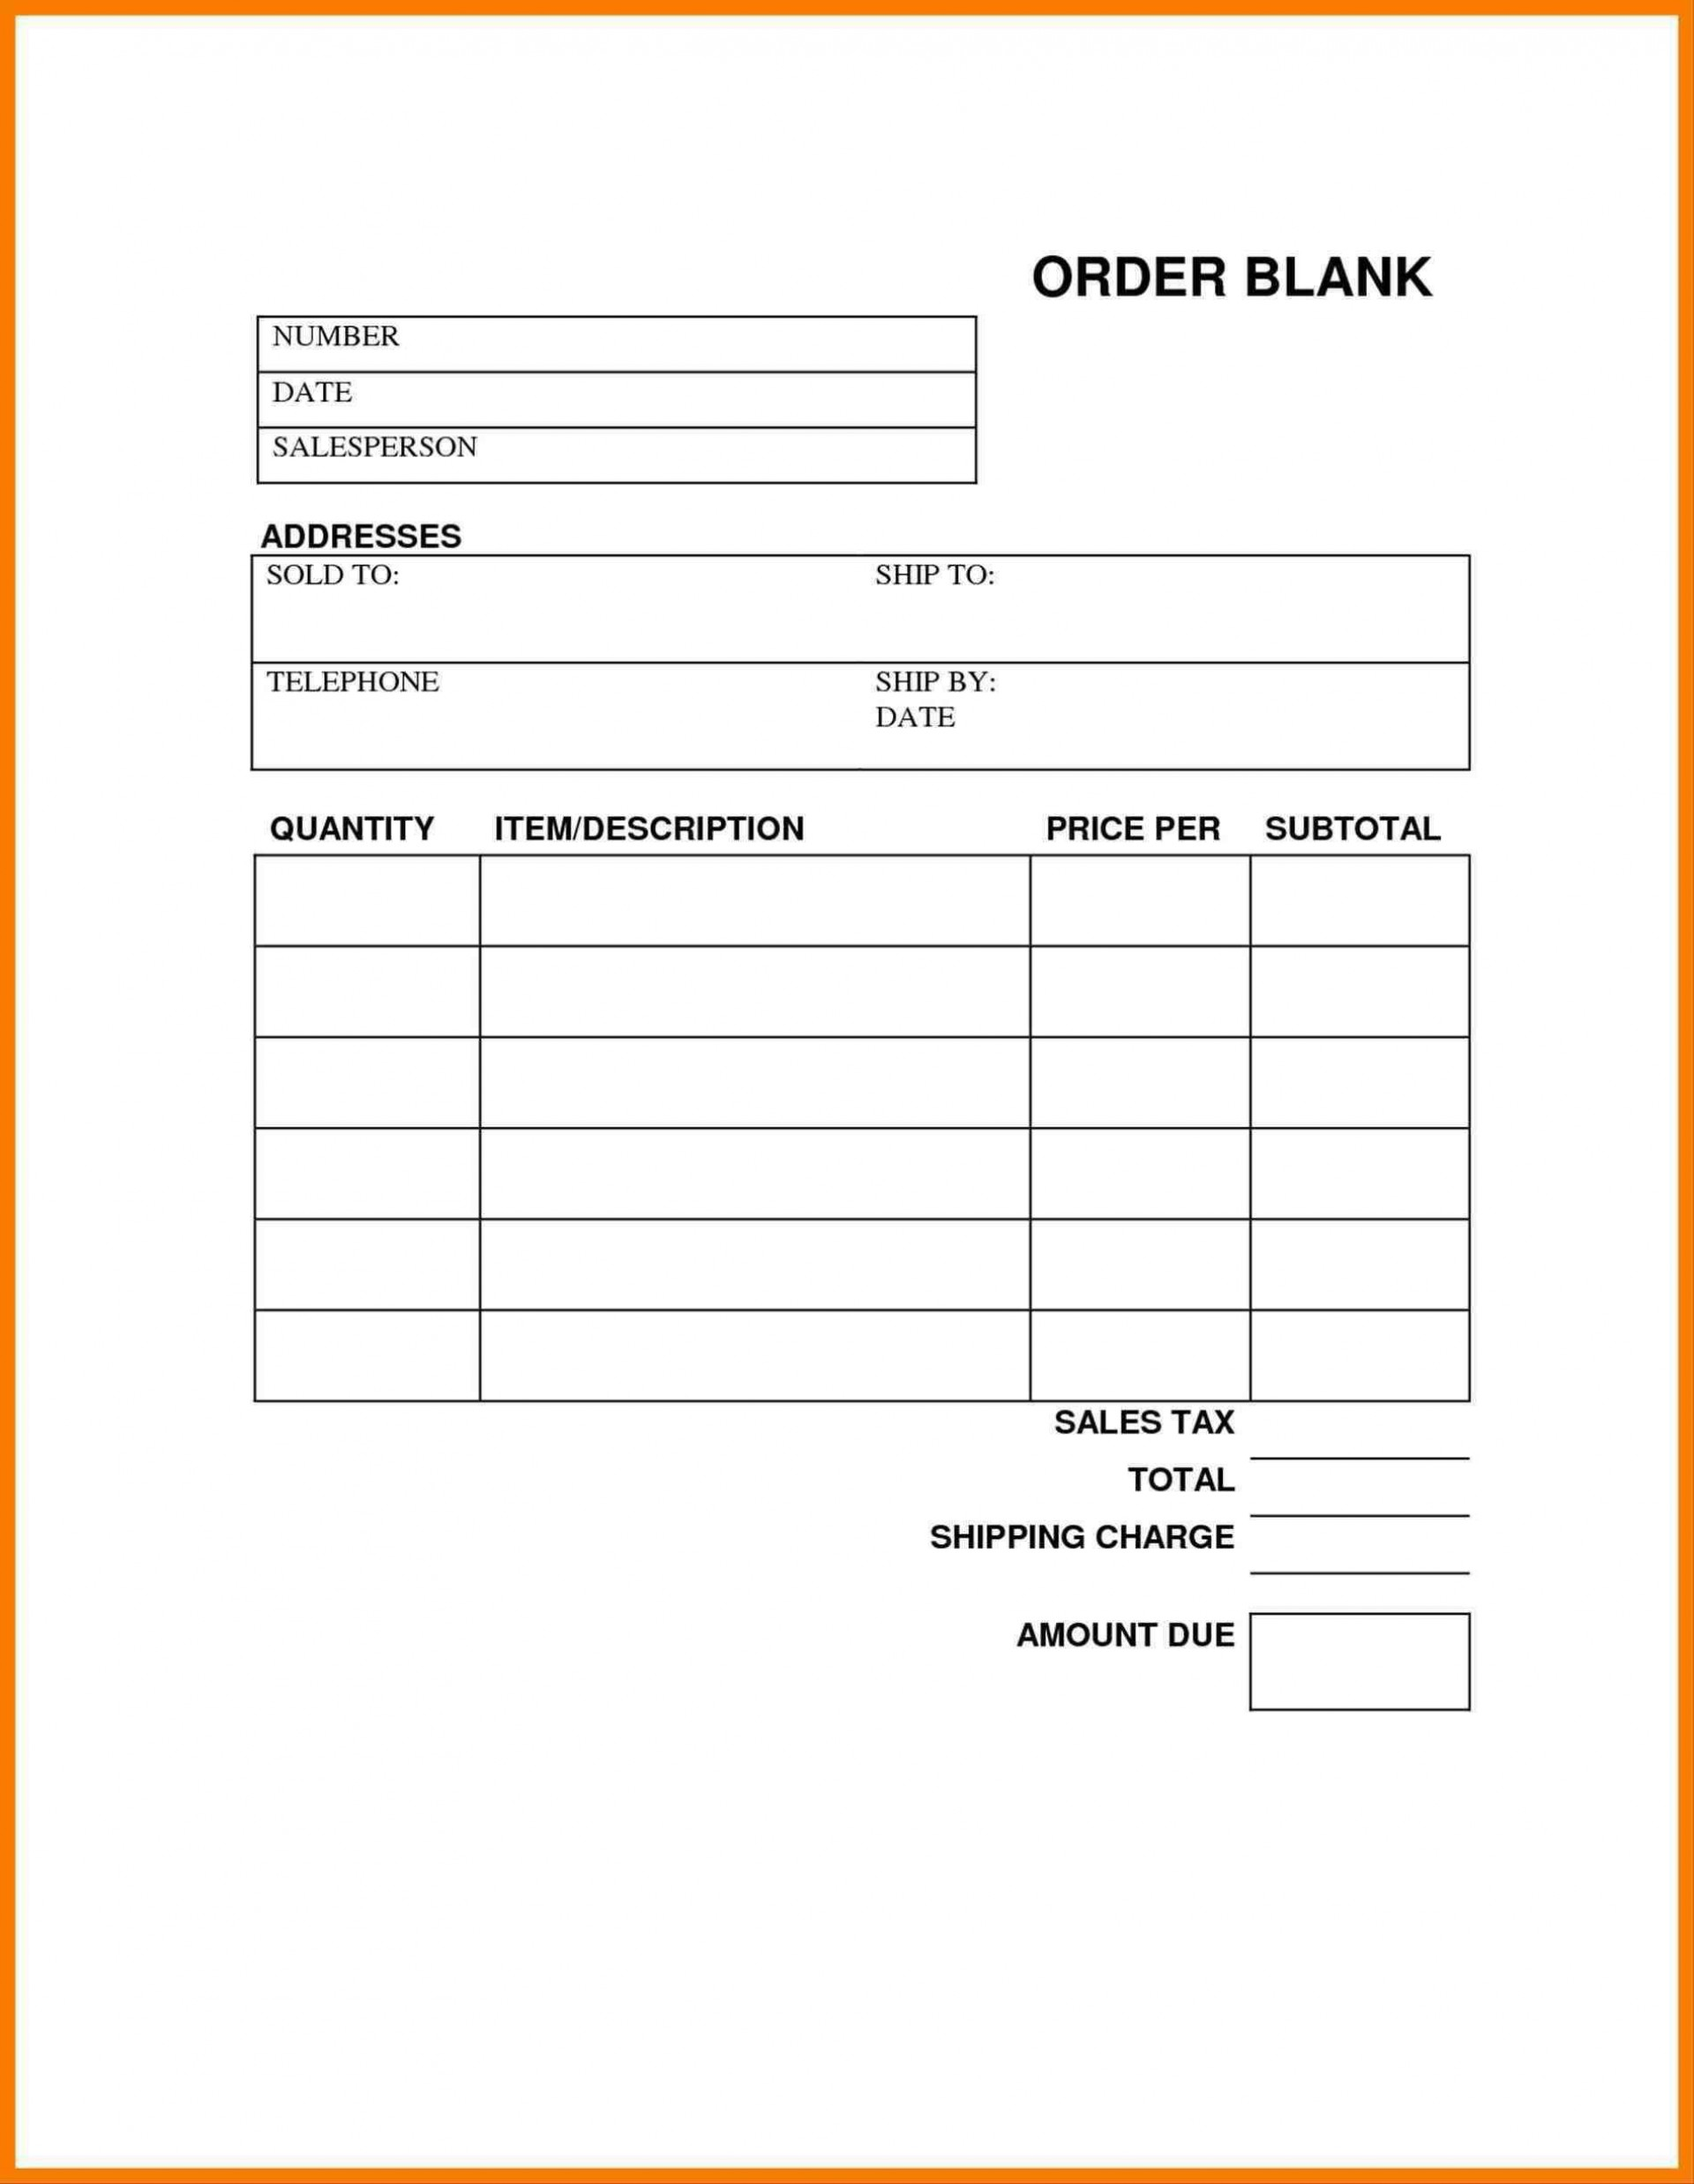 004 Fearsome Order Form Template Free Example  Application Shirt Word Custom1920